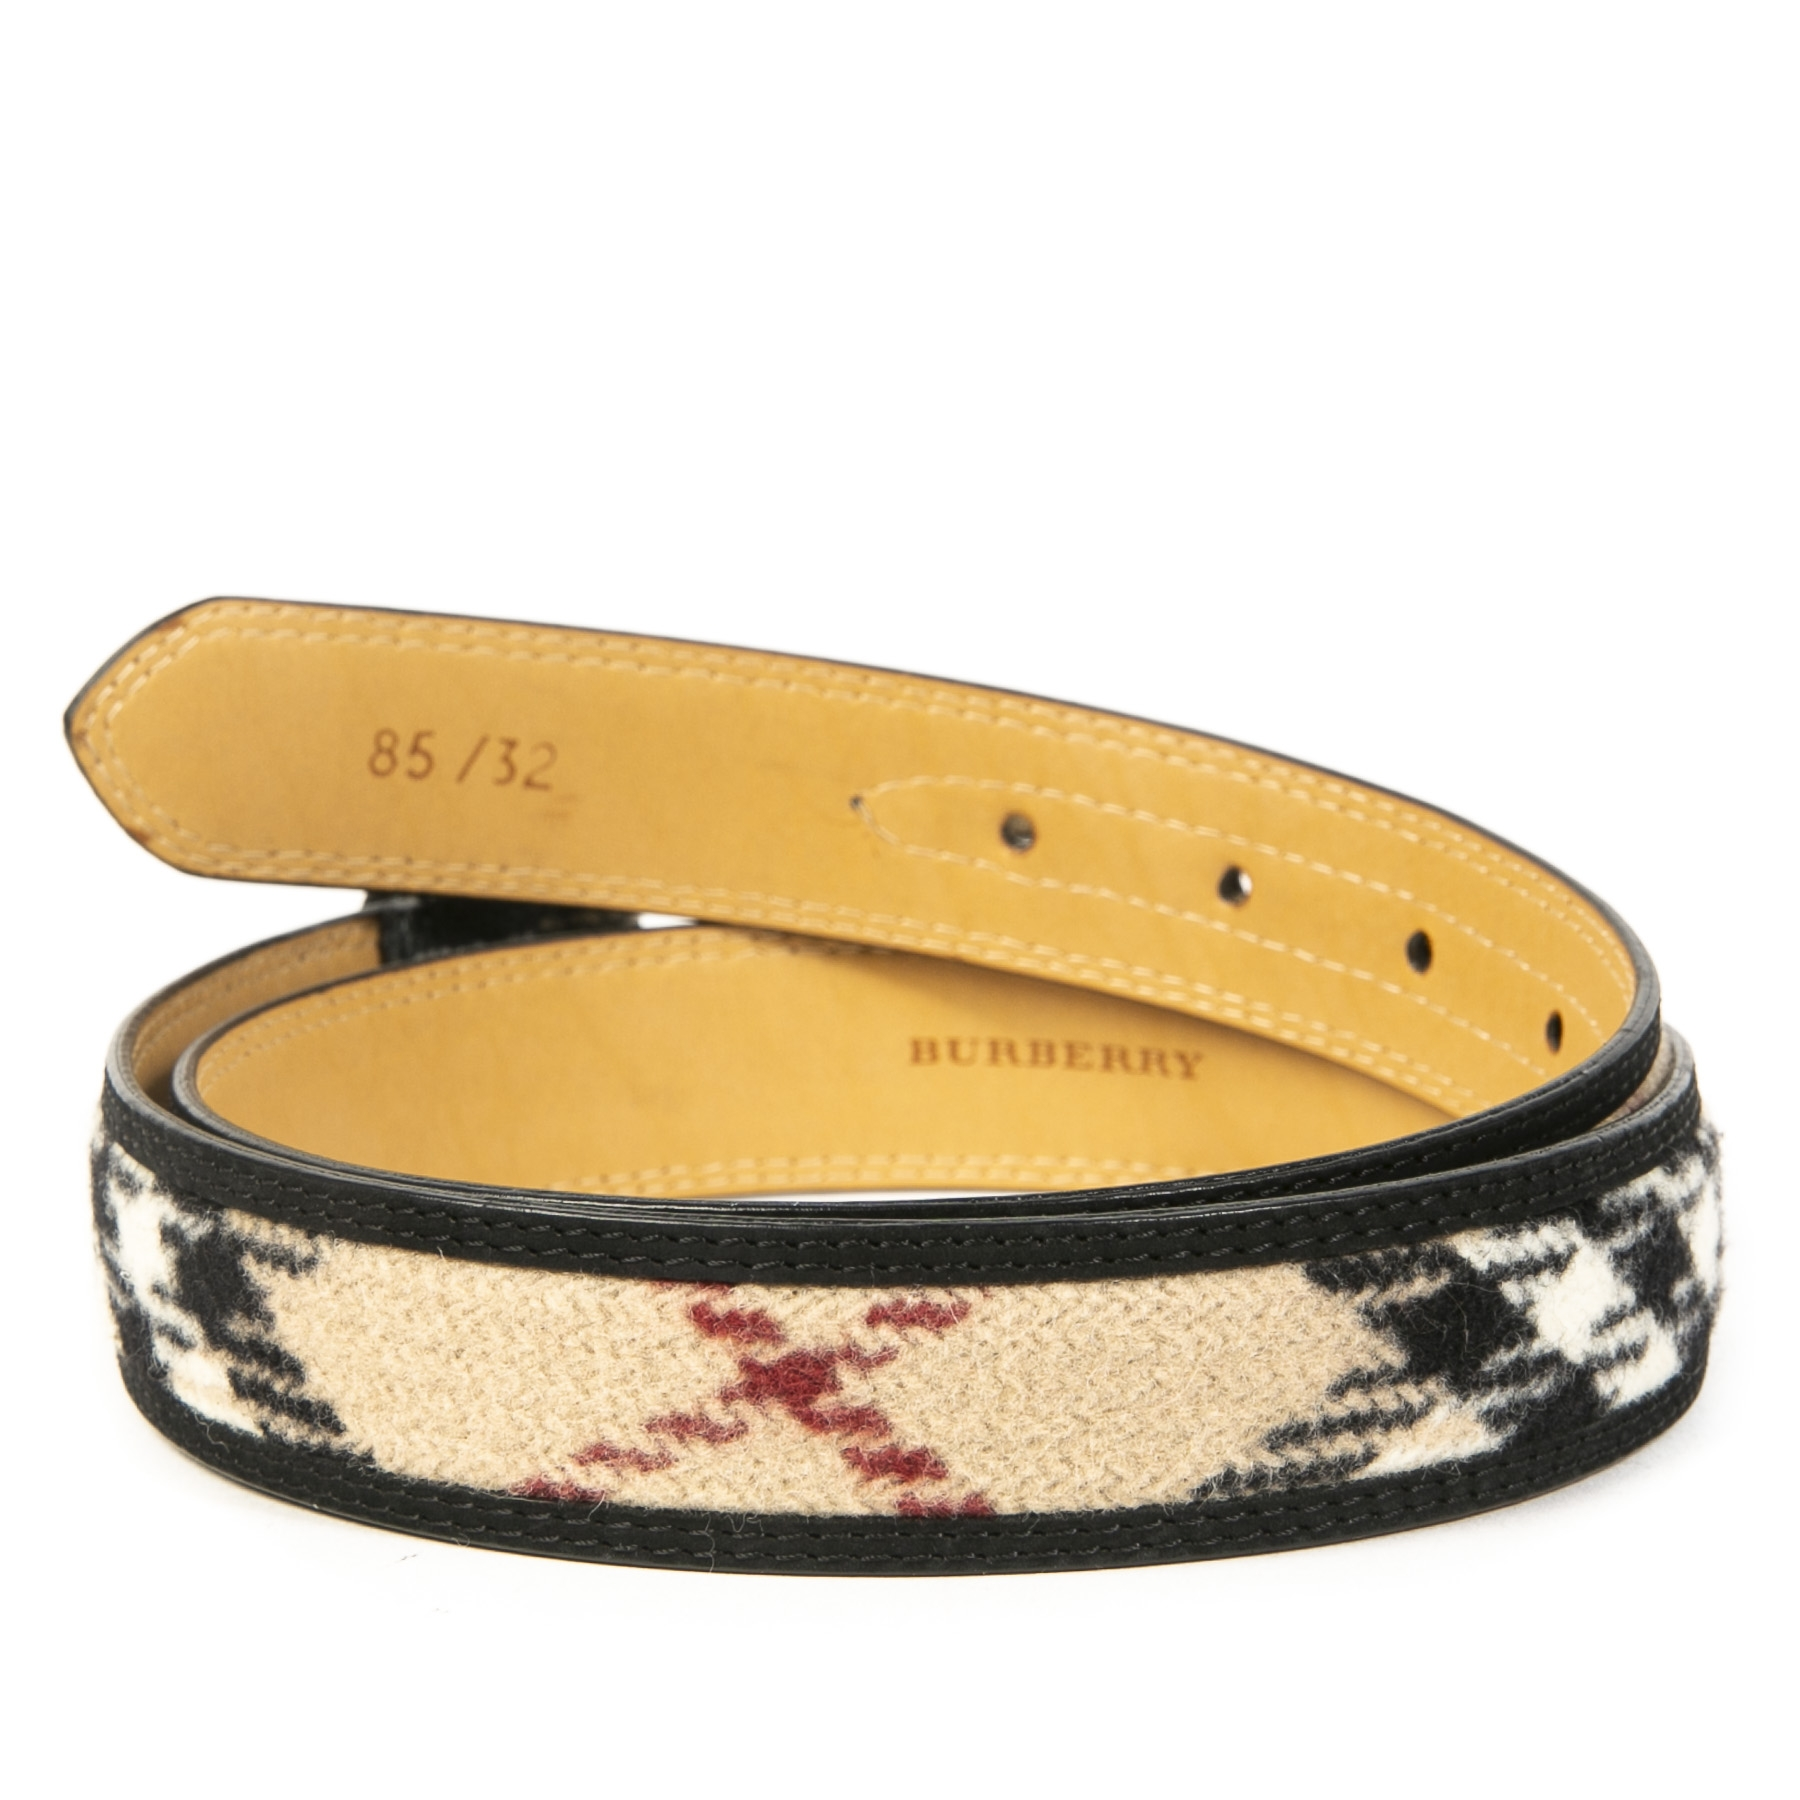 Burberry Wool Check Belt - size 85